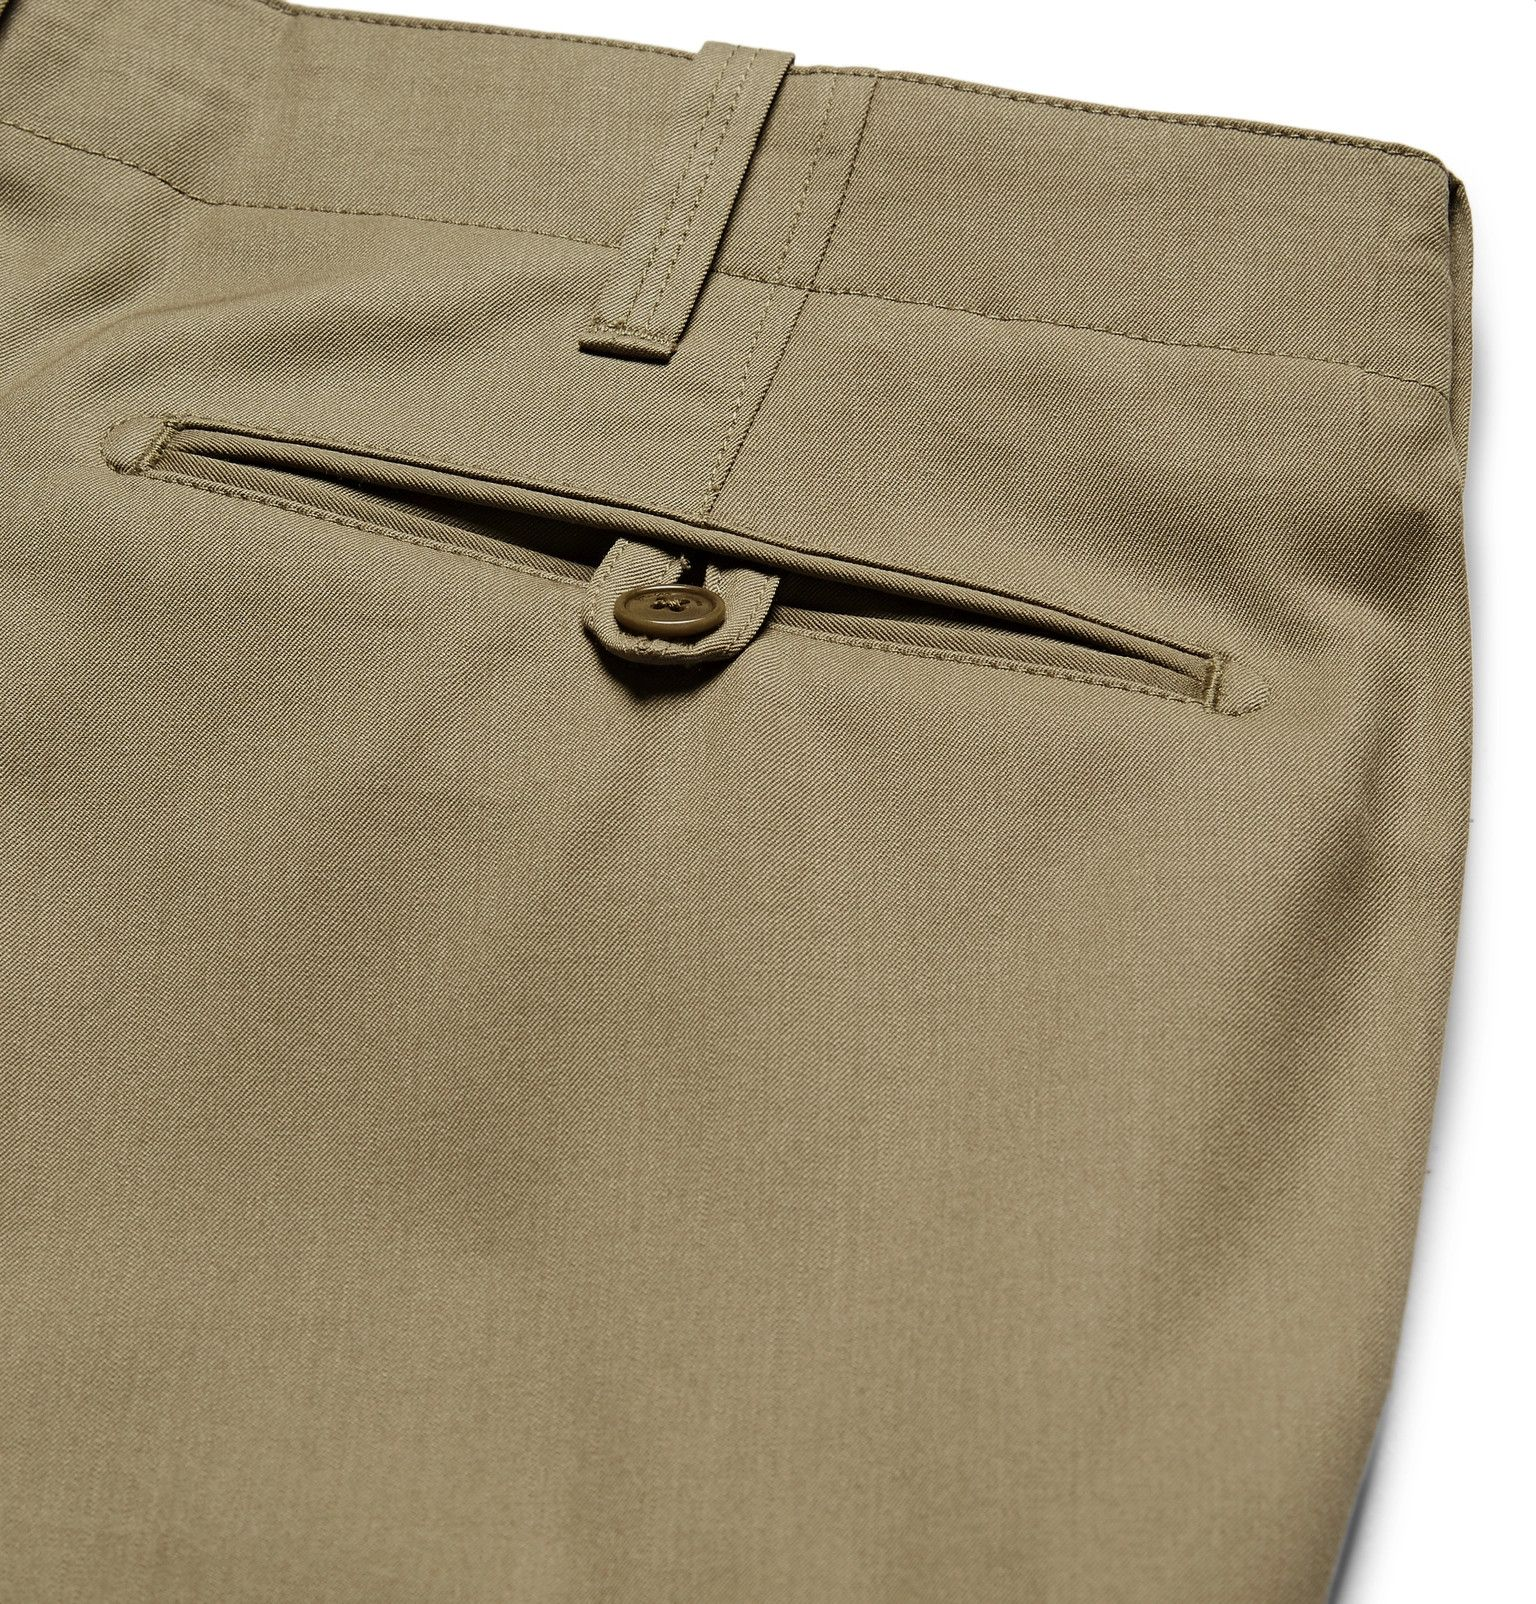 <a href='http://www.mrporter.com/mens/Designers/Ralph_Lauren_Purple_Label'>Ralph Lauren Purple Label</a>'s 'Cargo Flight' trousers are modelled after an Air Force suit. They have been expertly crafted from olive wool-gabardine and designed with utilitarian-inspired details. Team them with a pared-back suede jacket and high-top sneakers.